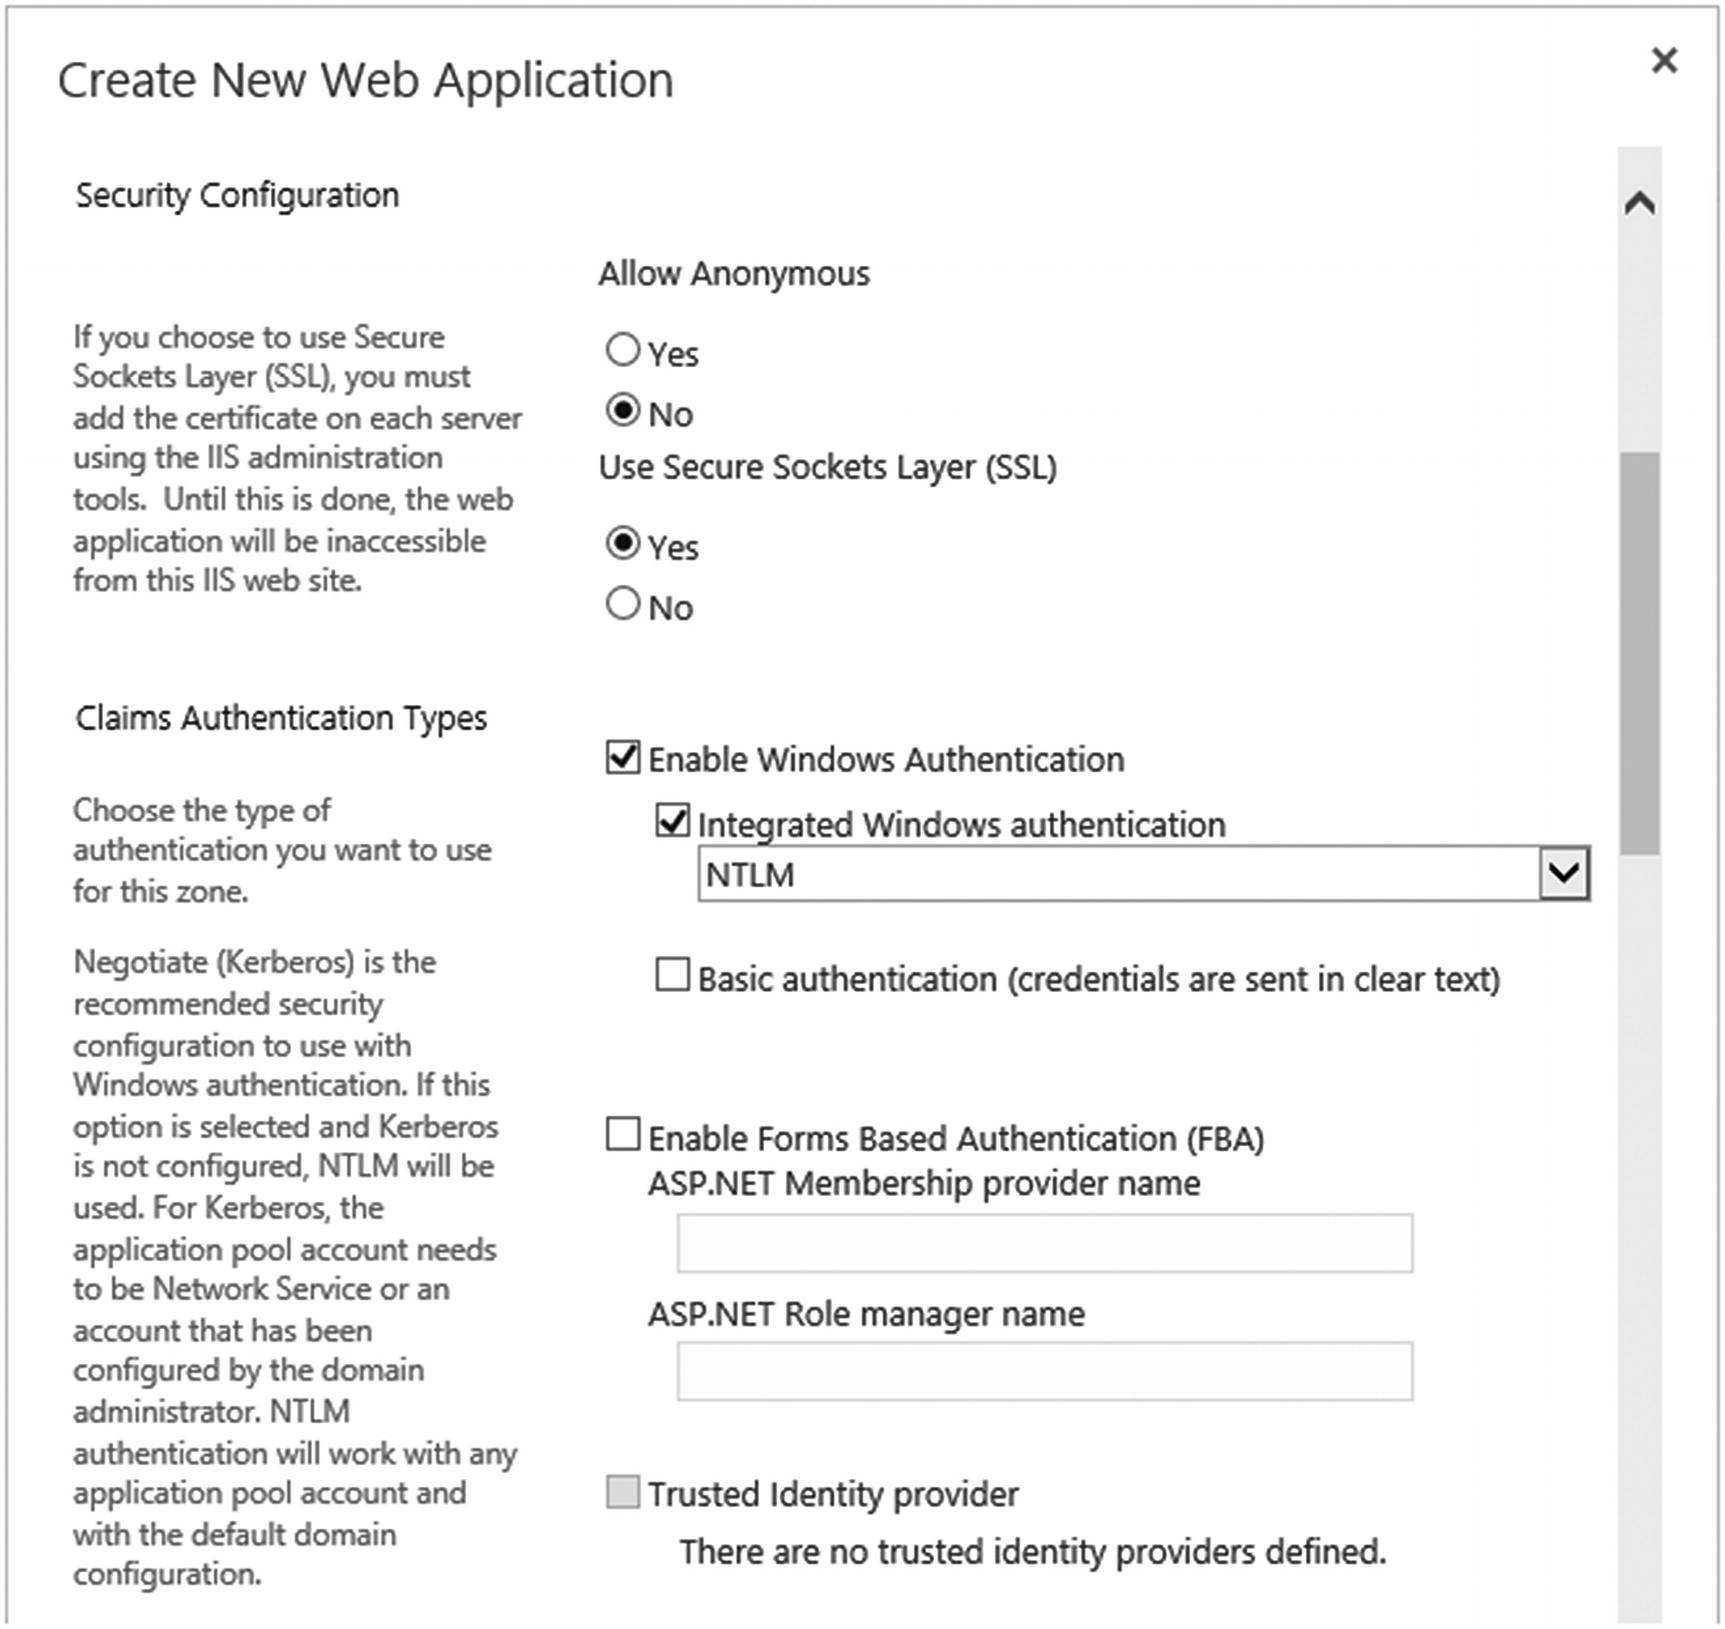 Creating Web Applications and Site Collections | SpringerLink